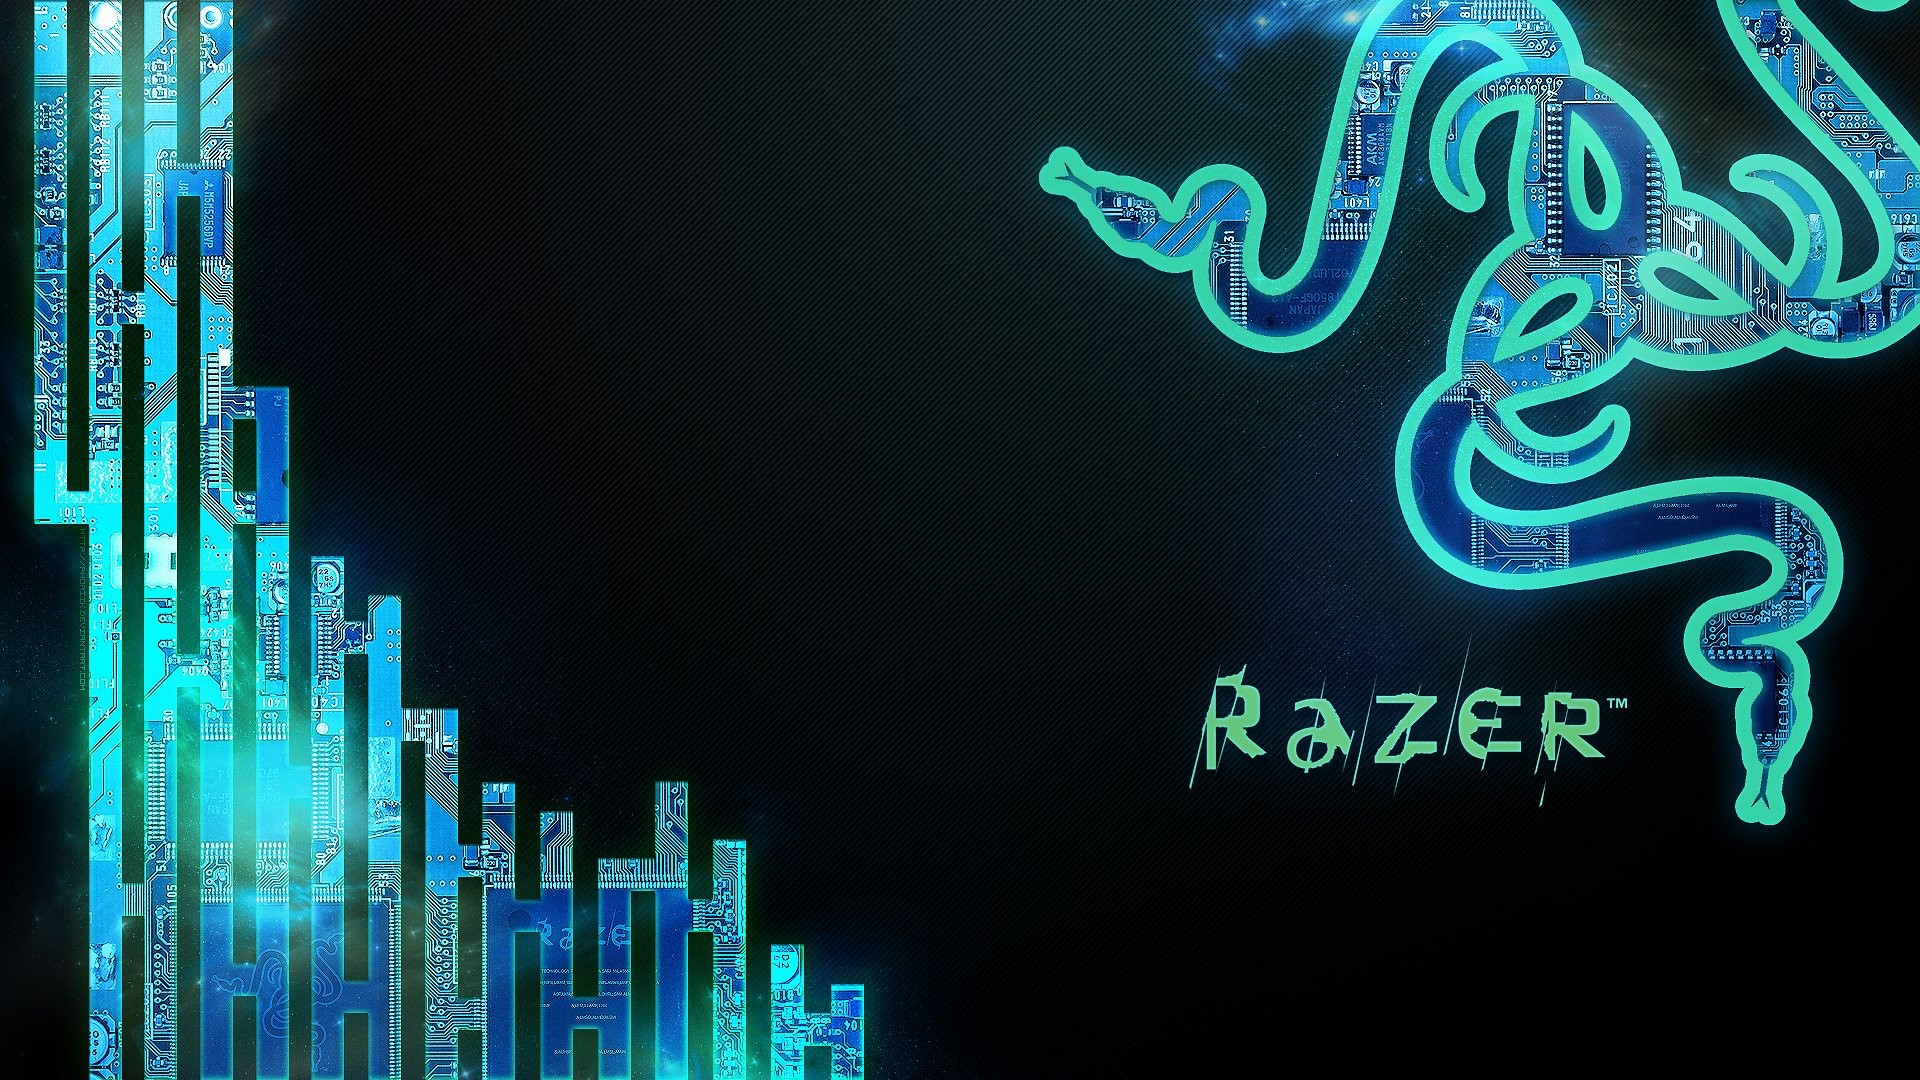 Explore More Wallpapers in the Razer Subcategory!